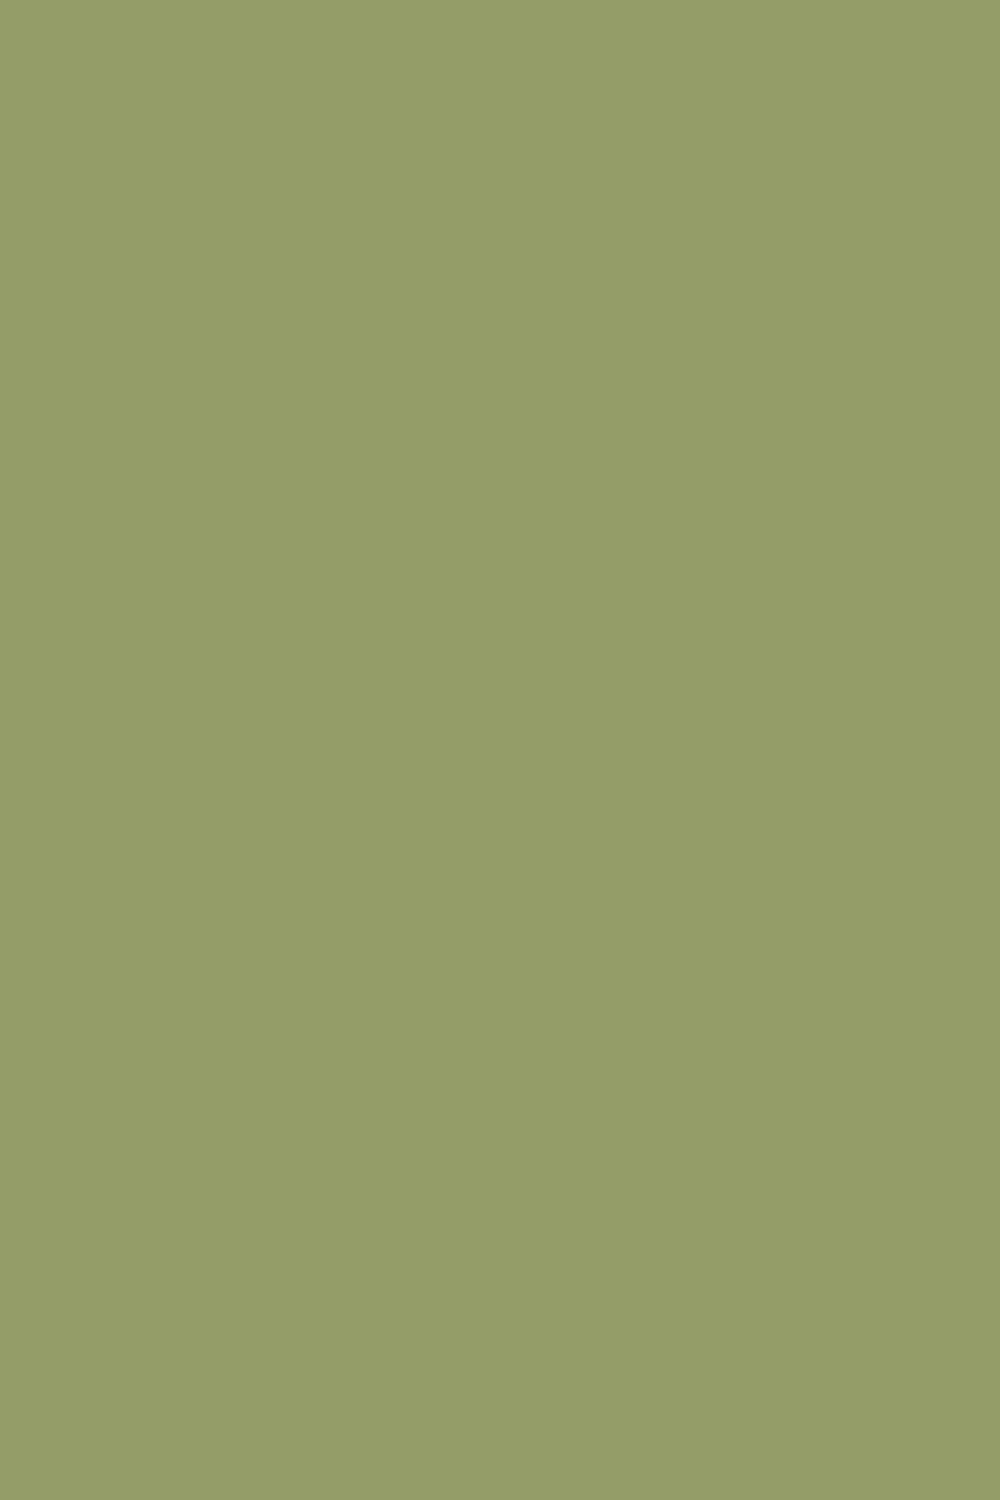 Farrow & Ball Olive high-gloss front doors | Brownstone color story ...